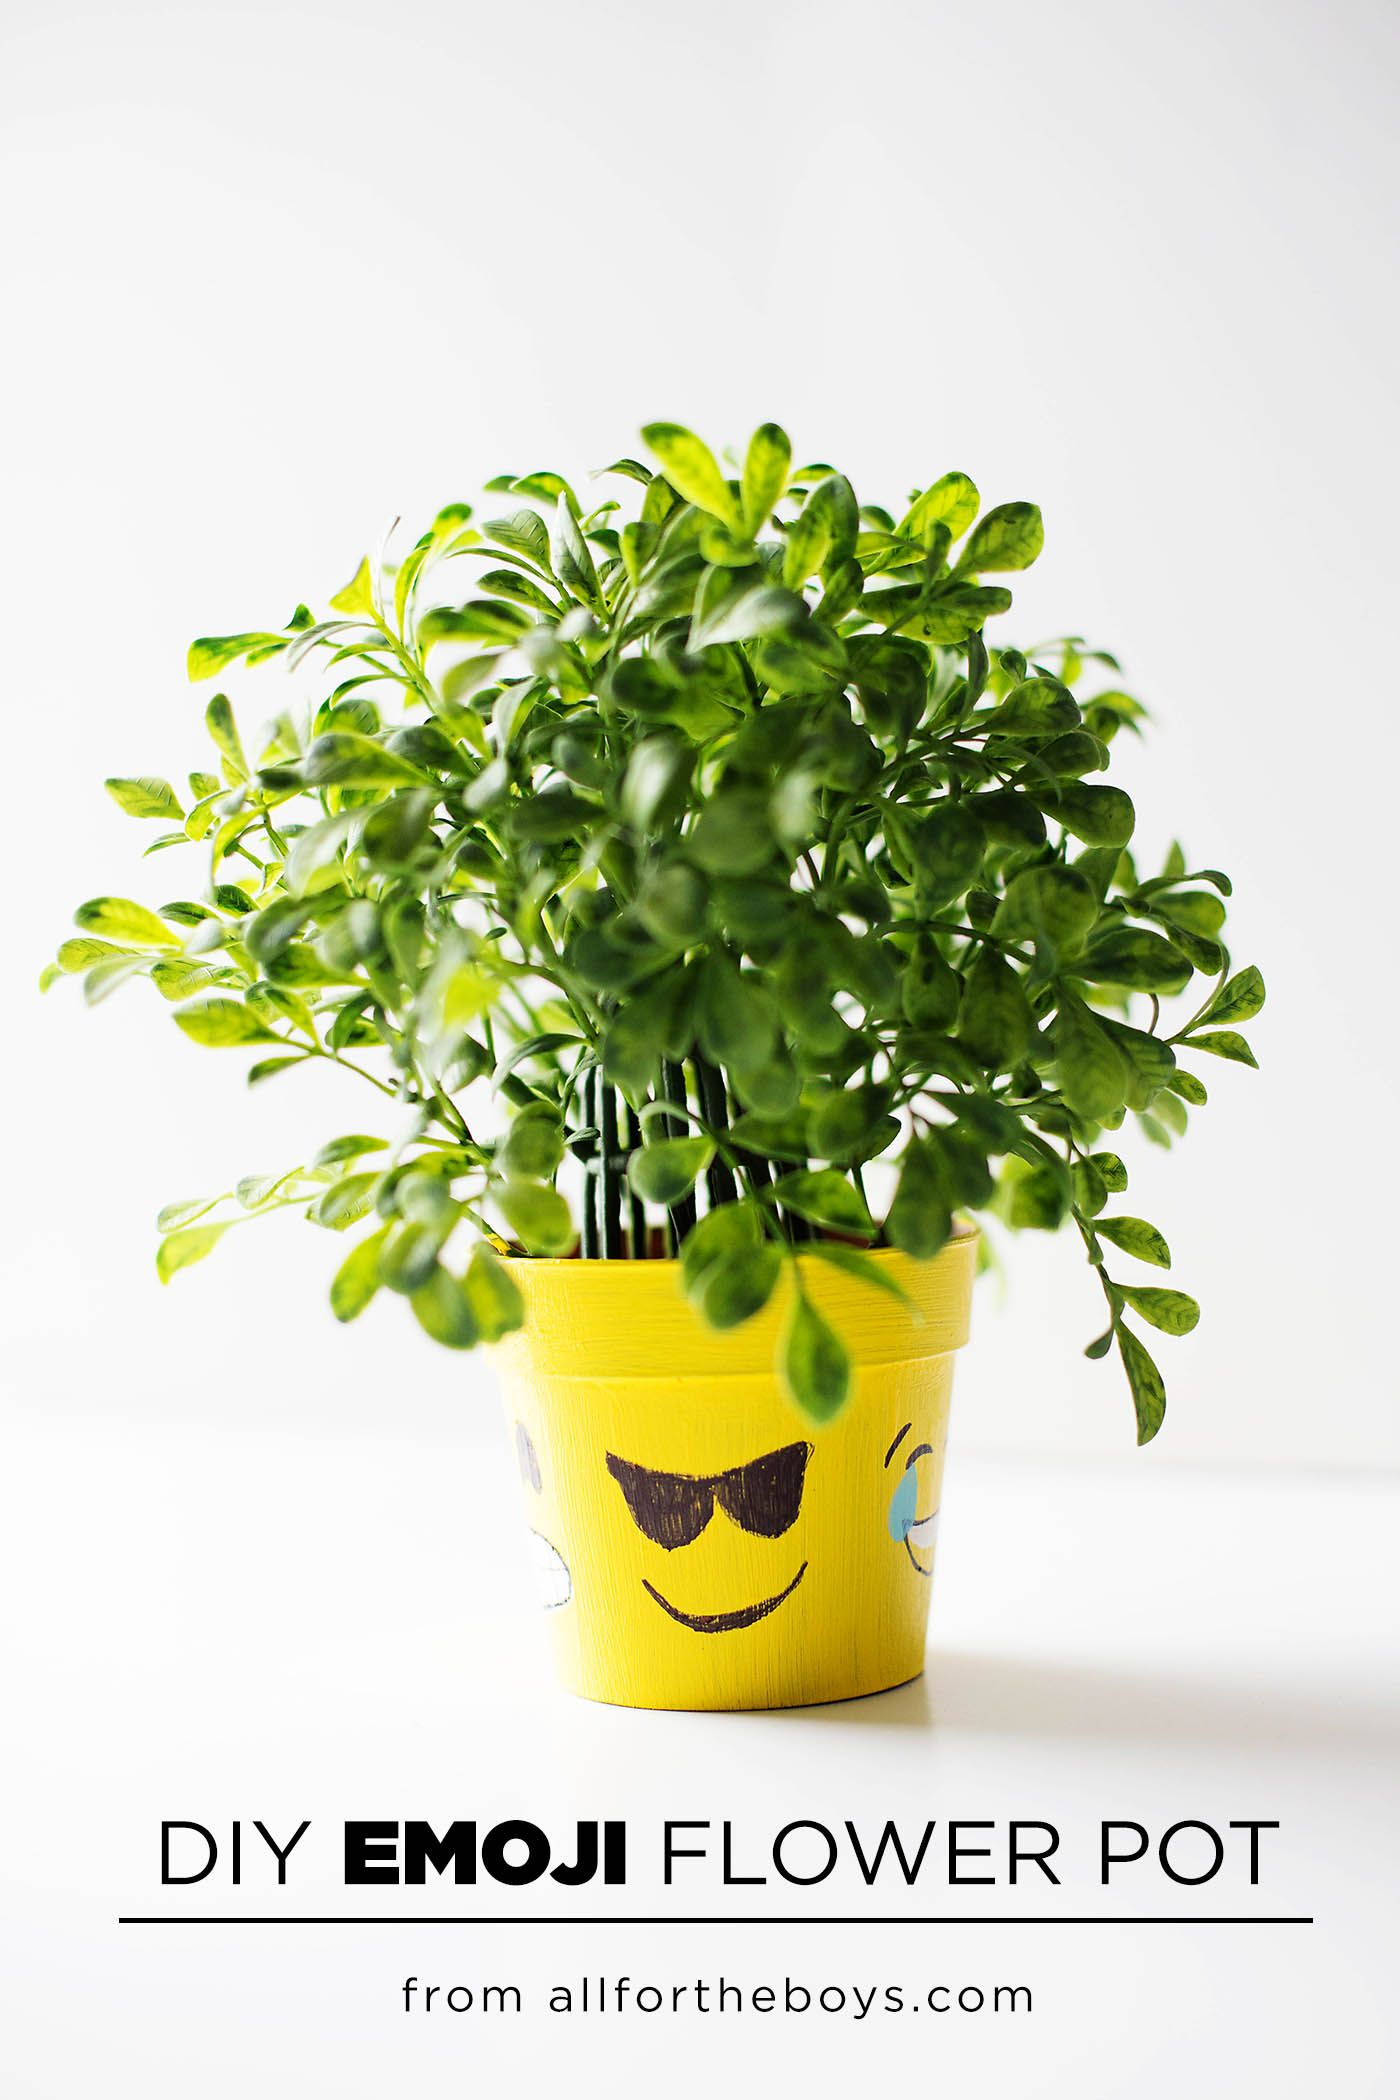 Diy Emoji Flower Pot How Are You Feeling Today All For The Boys Emoji Flower Flower Pots Emoji